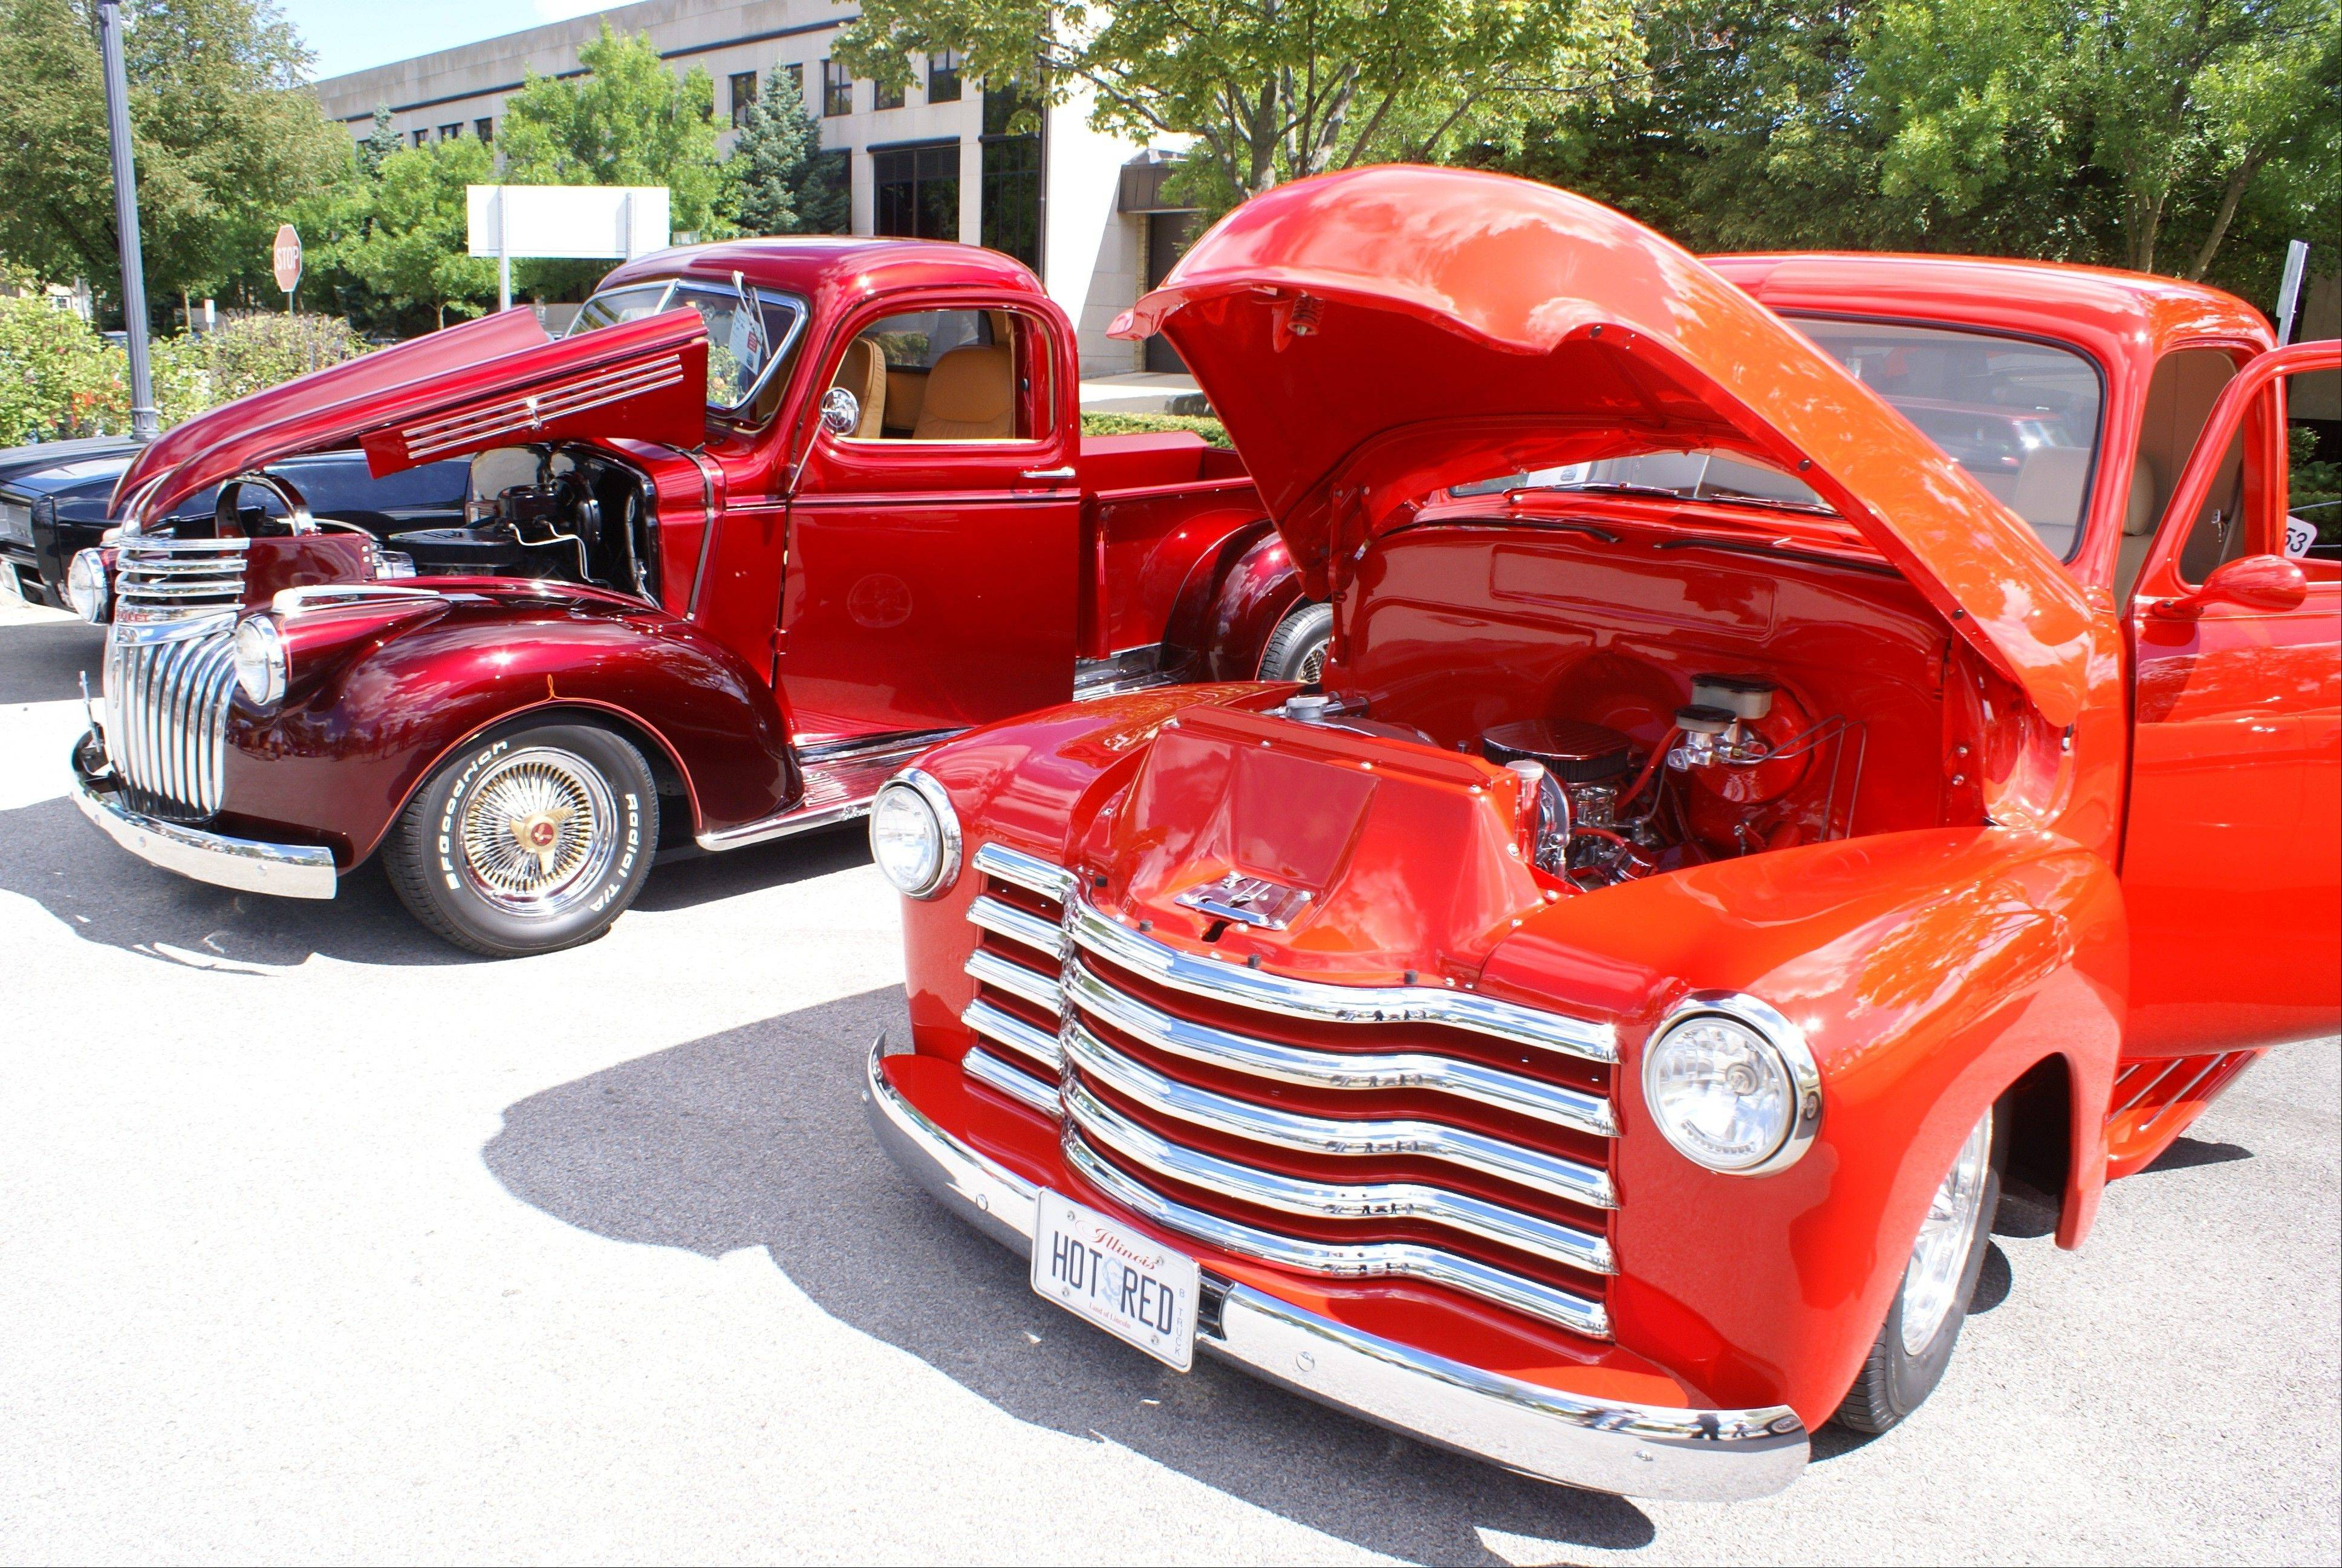 Motoring at the Museum car show and Plein Air Art gathering will be Sunday at the Arlington Heights Historical Museum.